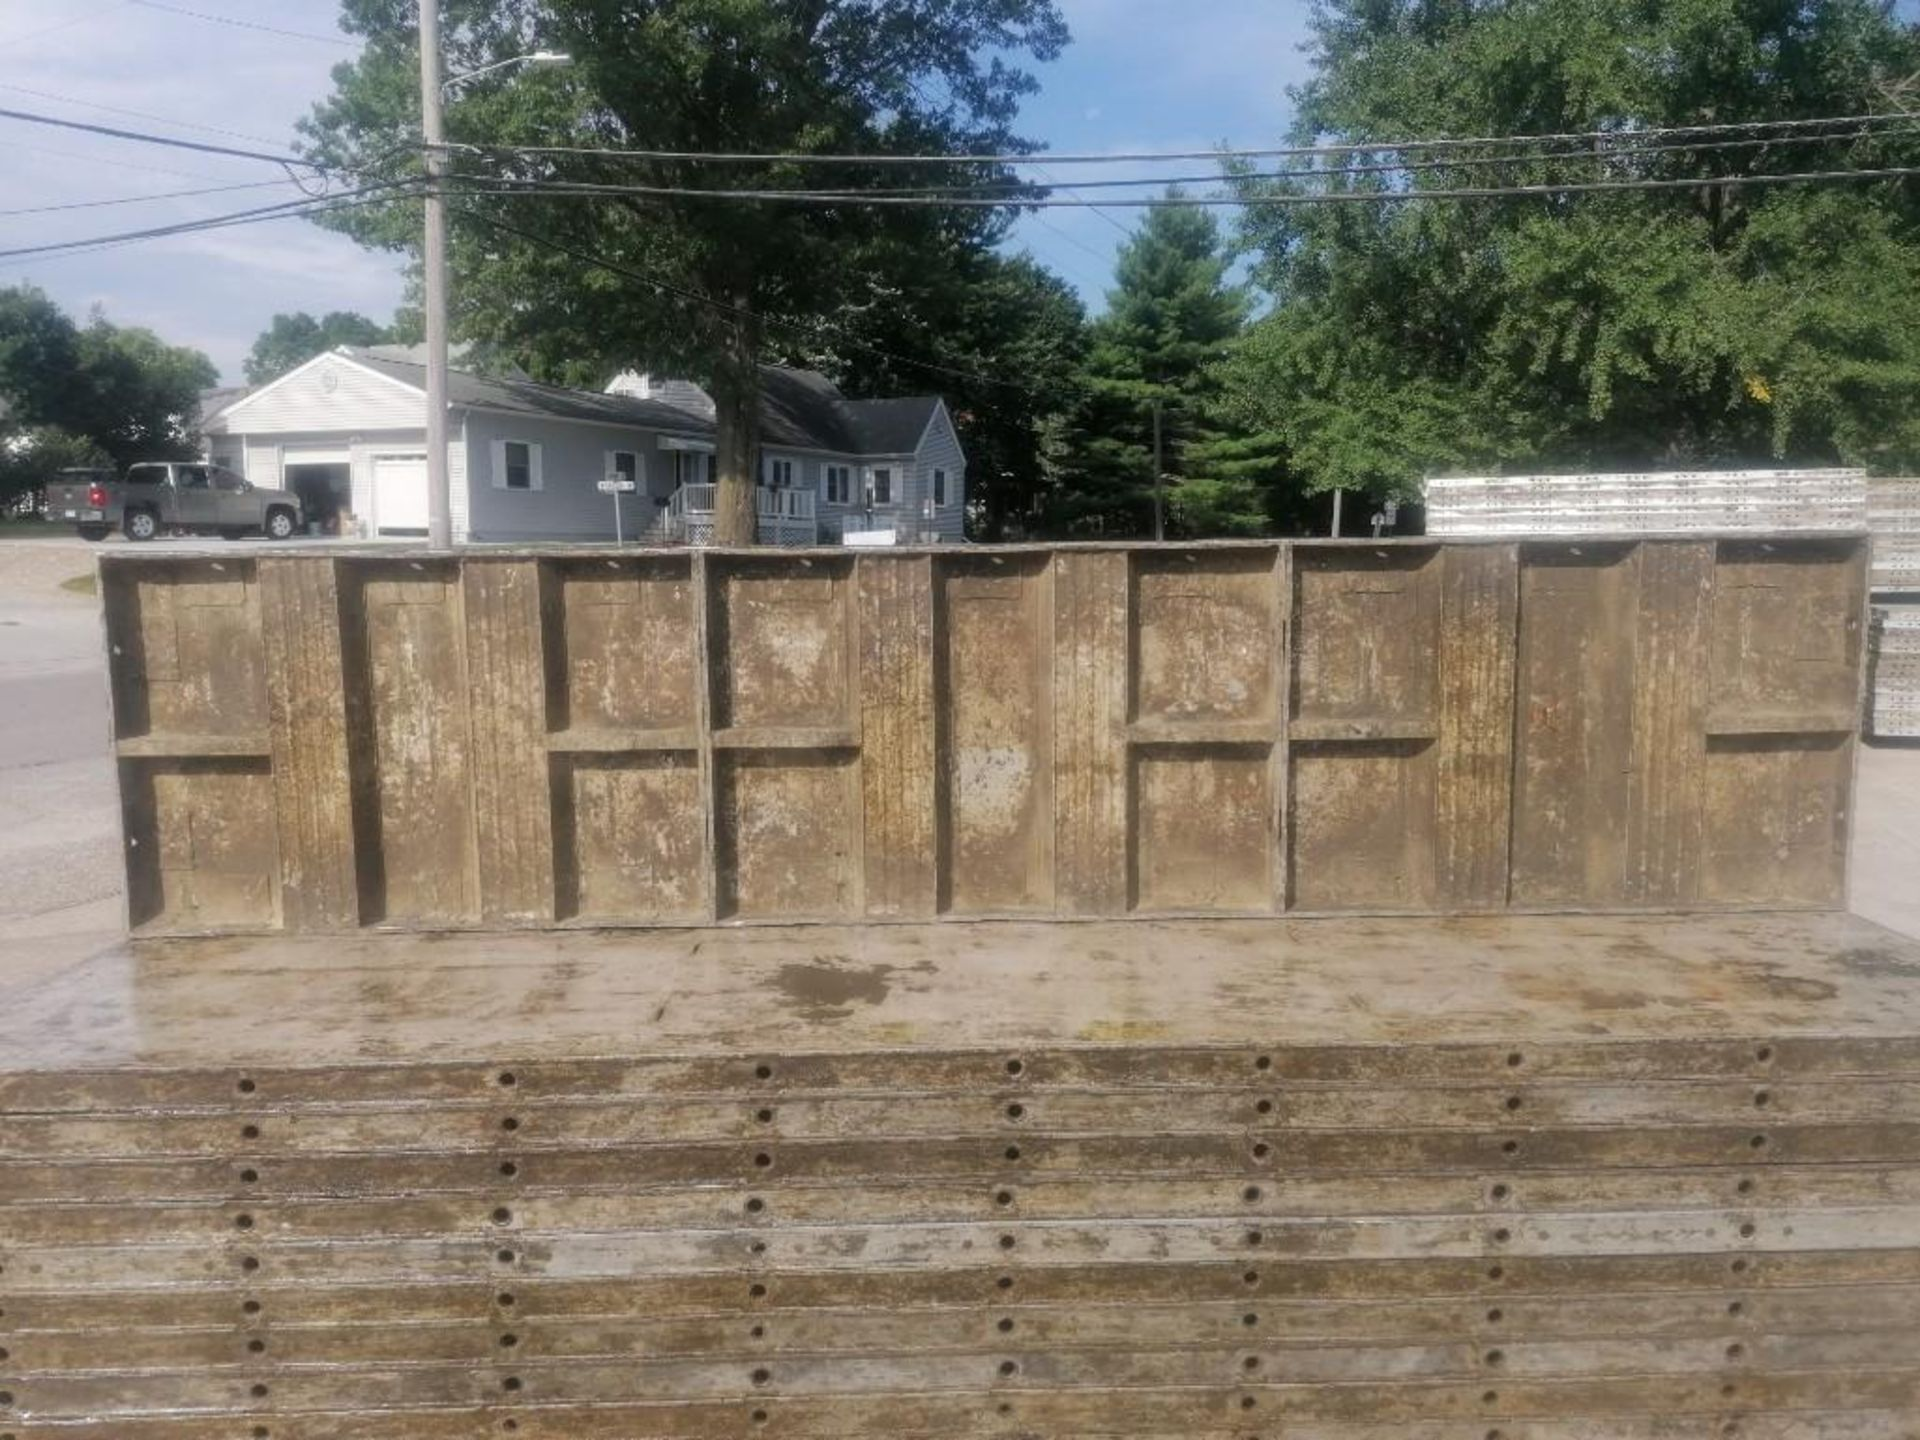 Lot 146 - (30) 2' x 9' Wall-Ties Aluminum Concrete Forms, Laydowns, Smooth 6-12 Hole Pattern. Located at 301 E